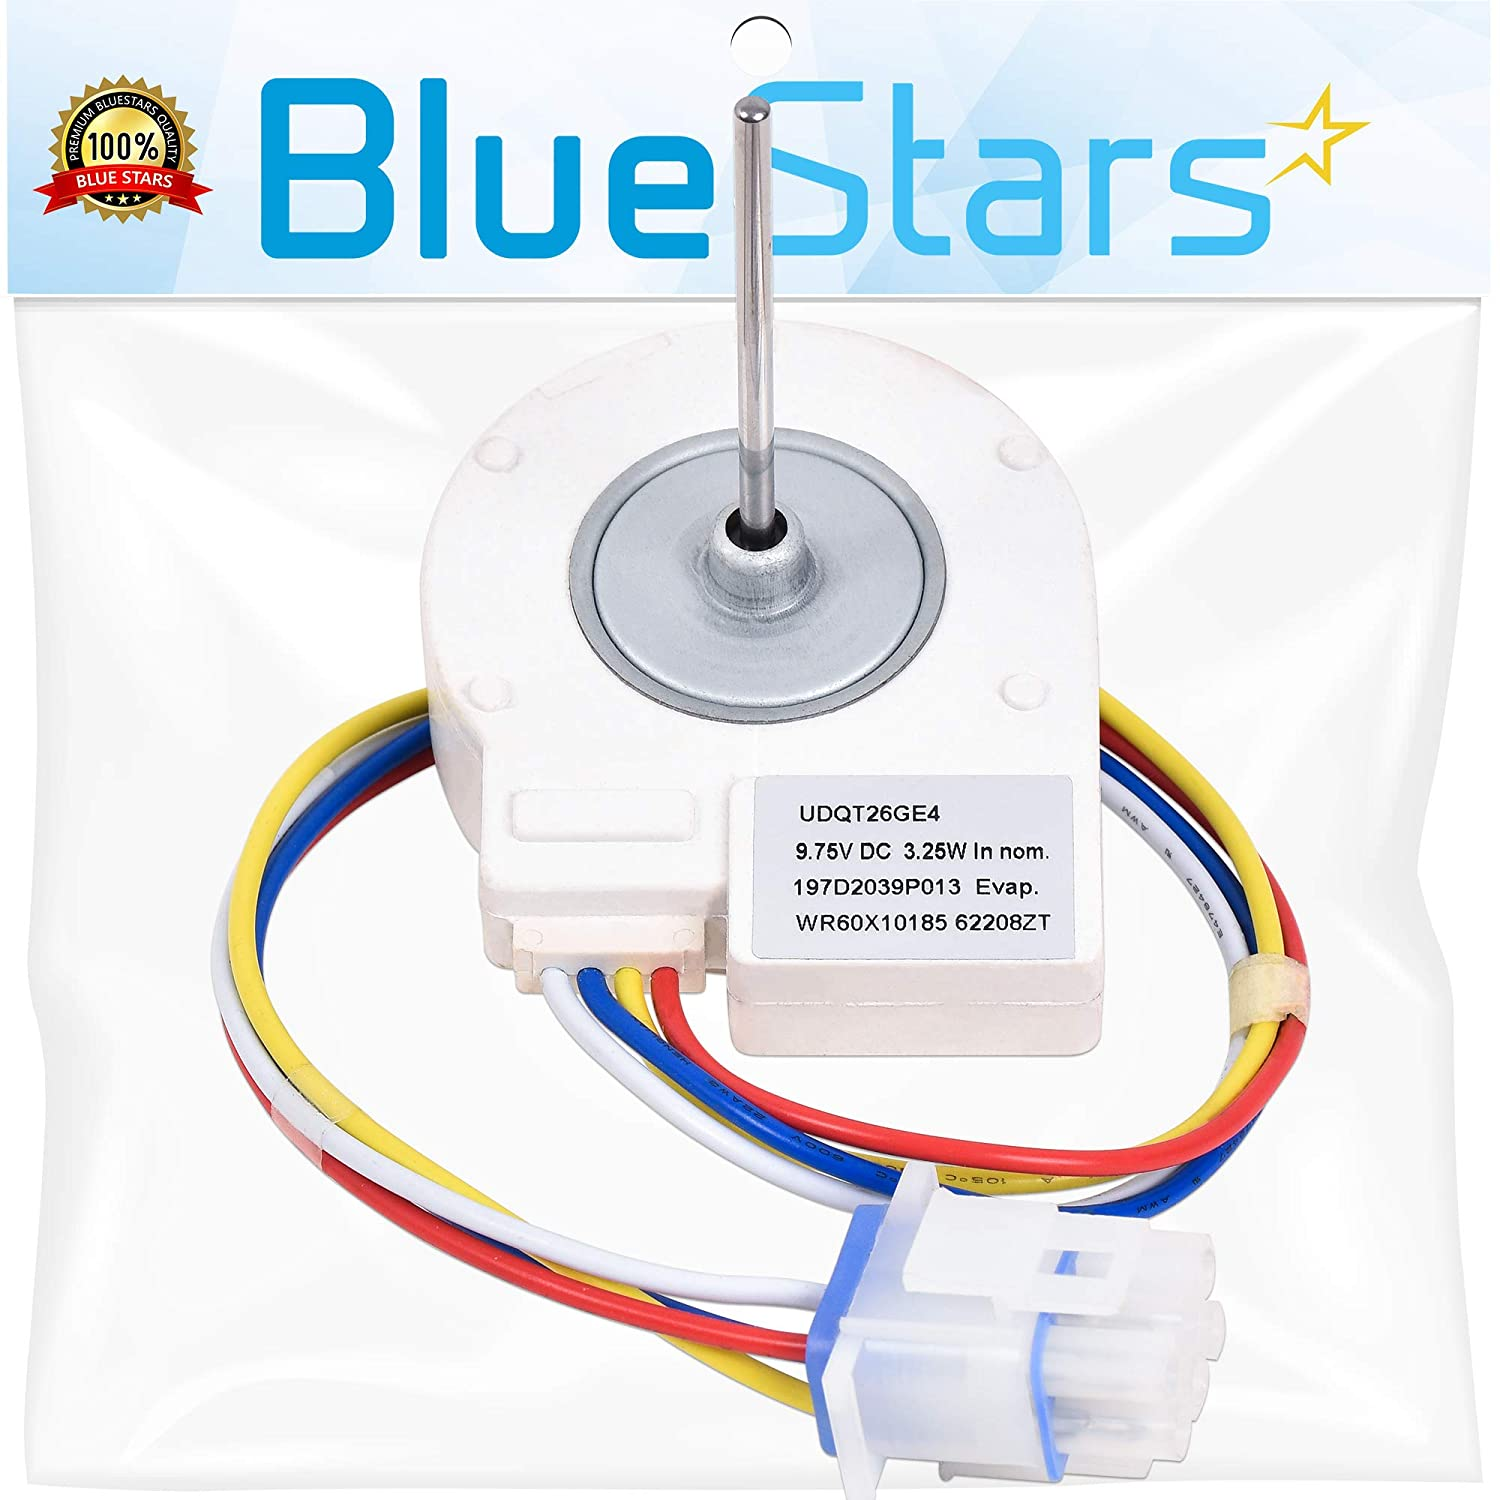 Ultra Durable WR60X10185 Evaporator Fan Motor Replacement Part by Blue Stars – Exact Fit For GE & Hotpoint Refrigerators – Replaces WR23X10353 WR23X10355 WR23X10364